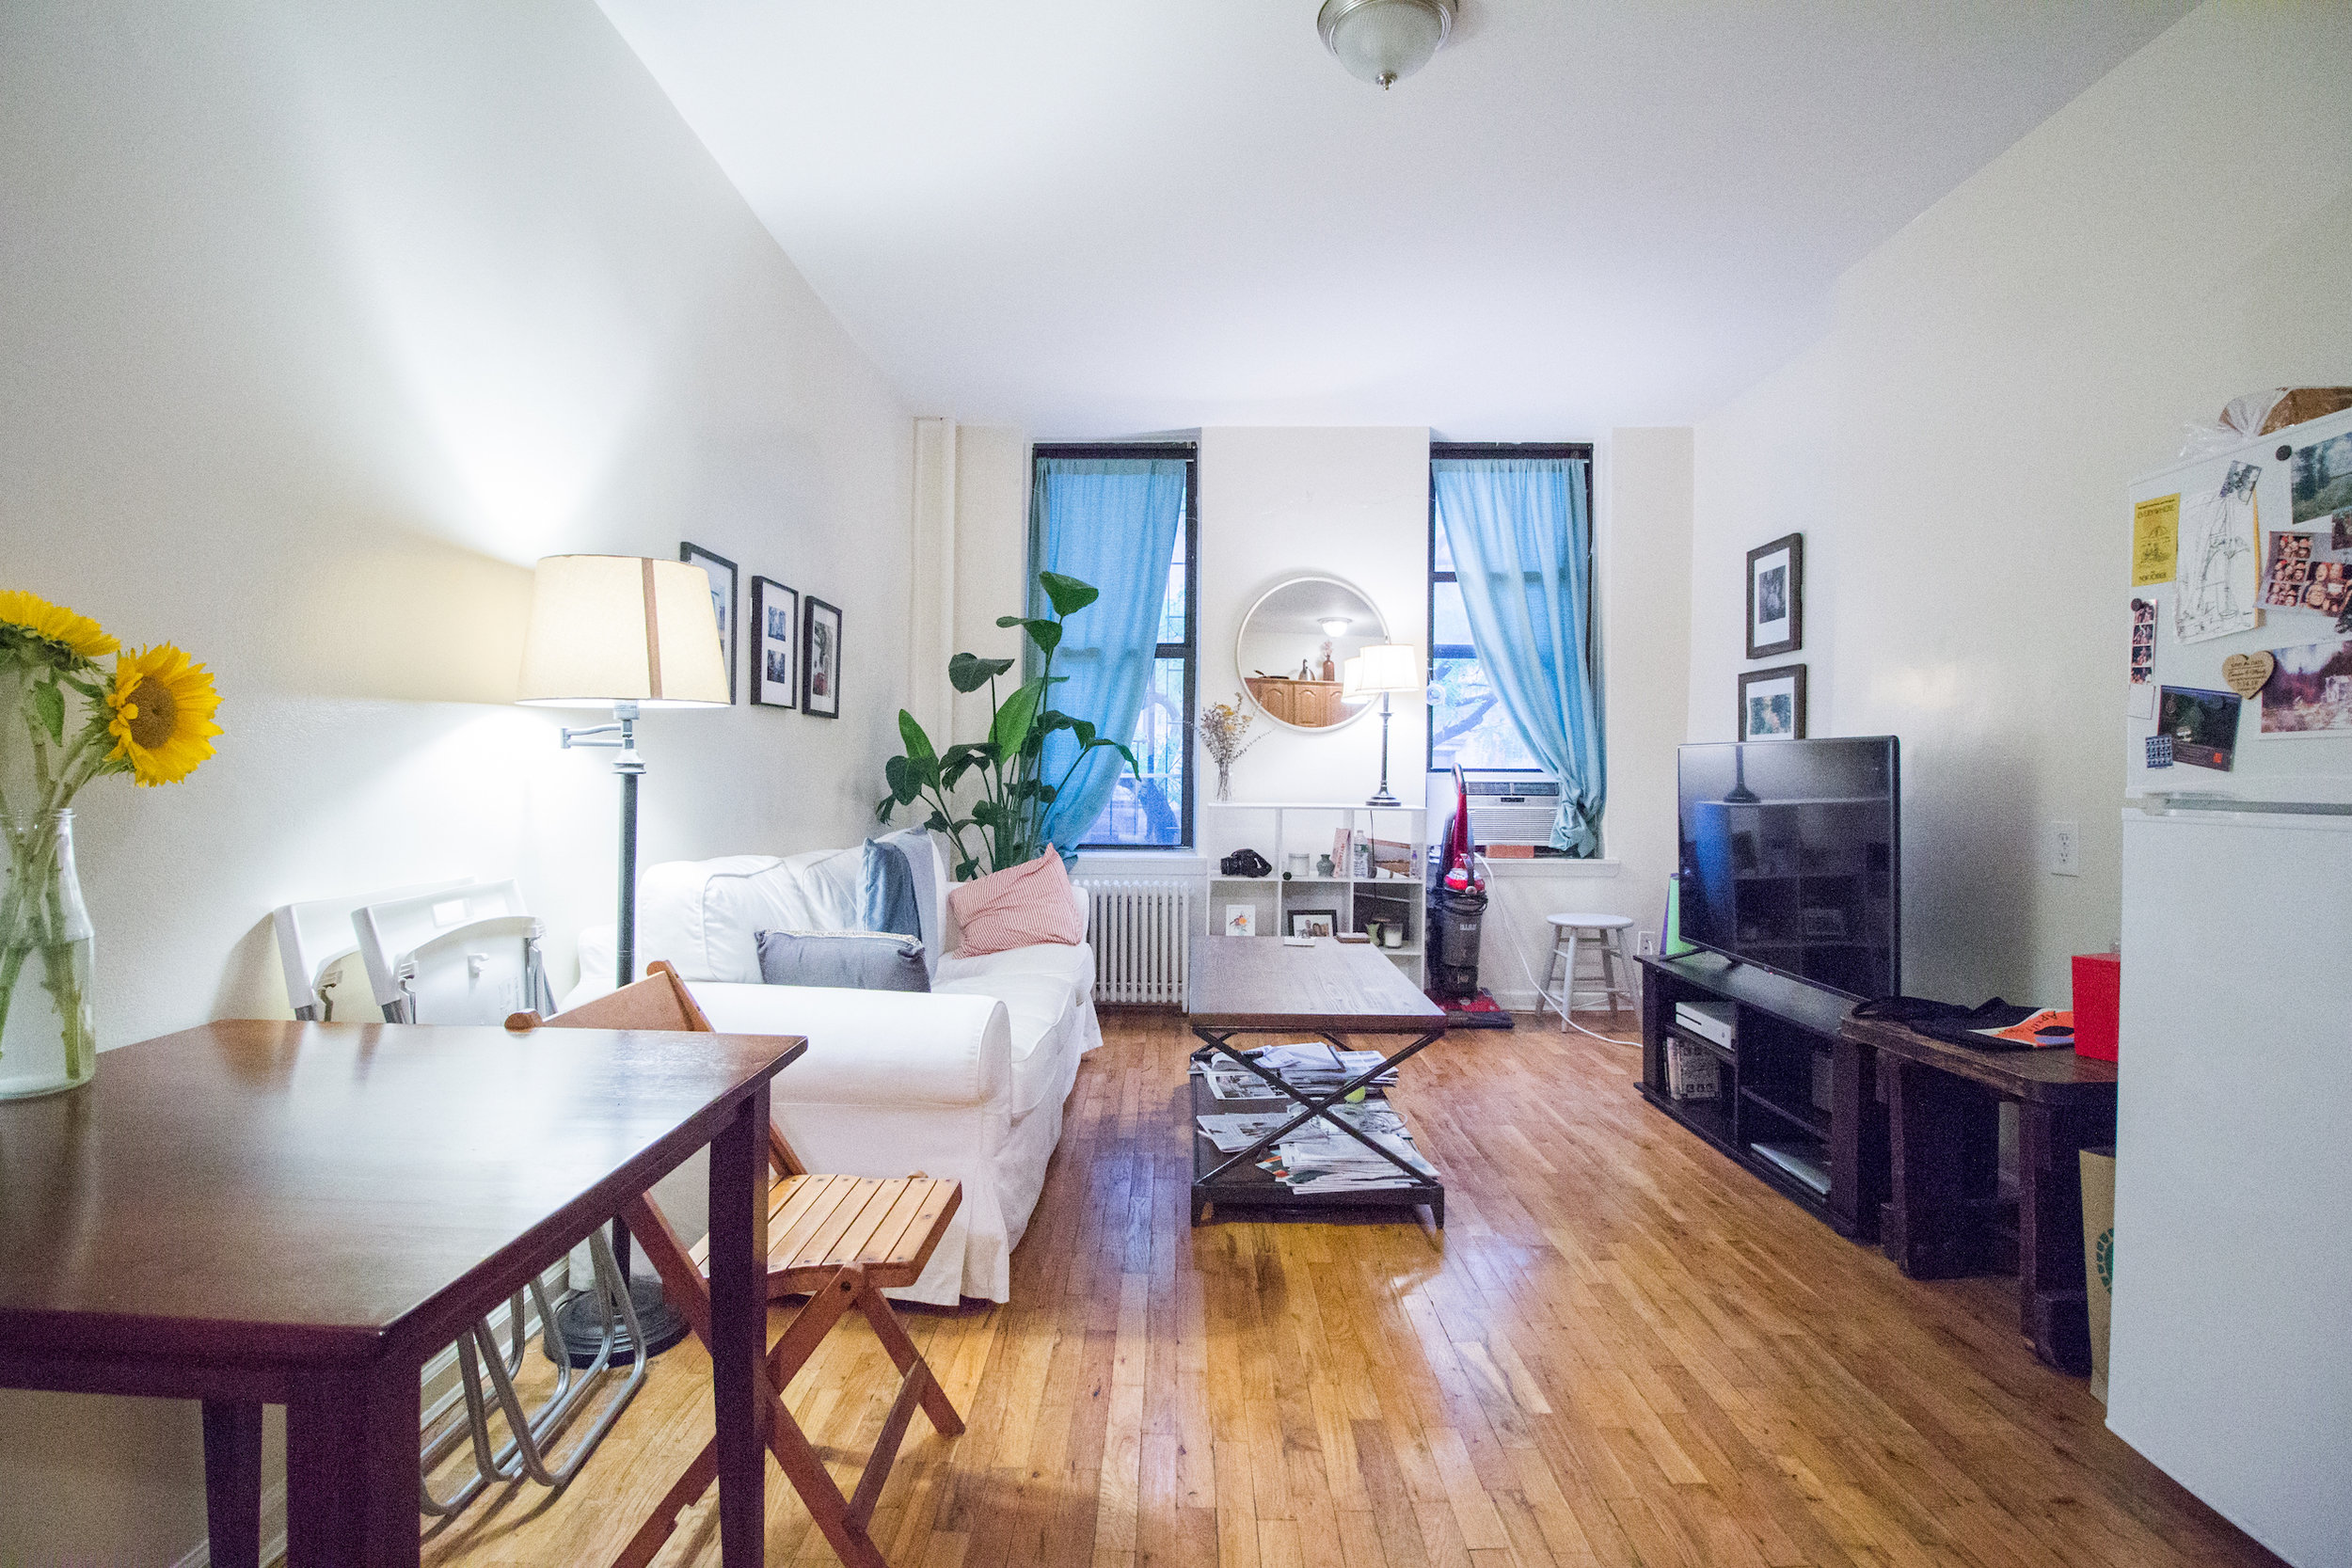 419 W 56th Street #2B - Spectacular Super Large 1 Bedroom with office space in a charming brownstone! Just one flight up, the unit features large living room with open kitchen, large walk-in closets, separate space that can be used as an office, and king size bedroom!Close to Columbus Circle and Central Park! Close to crosstown buses and A, C, B D, E N, R Q trains. Sorry, No pets or smokingRent: $2,495 /monthTerms: 12 - 12 MonthsAvailable: October